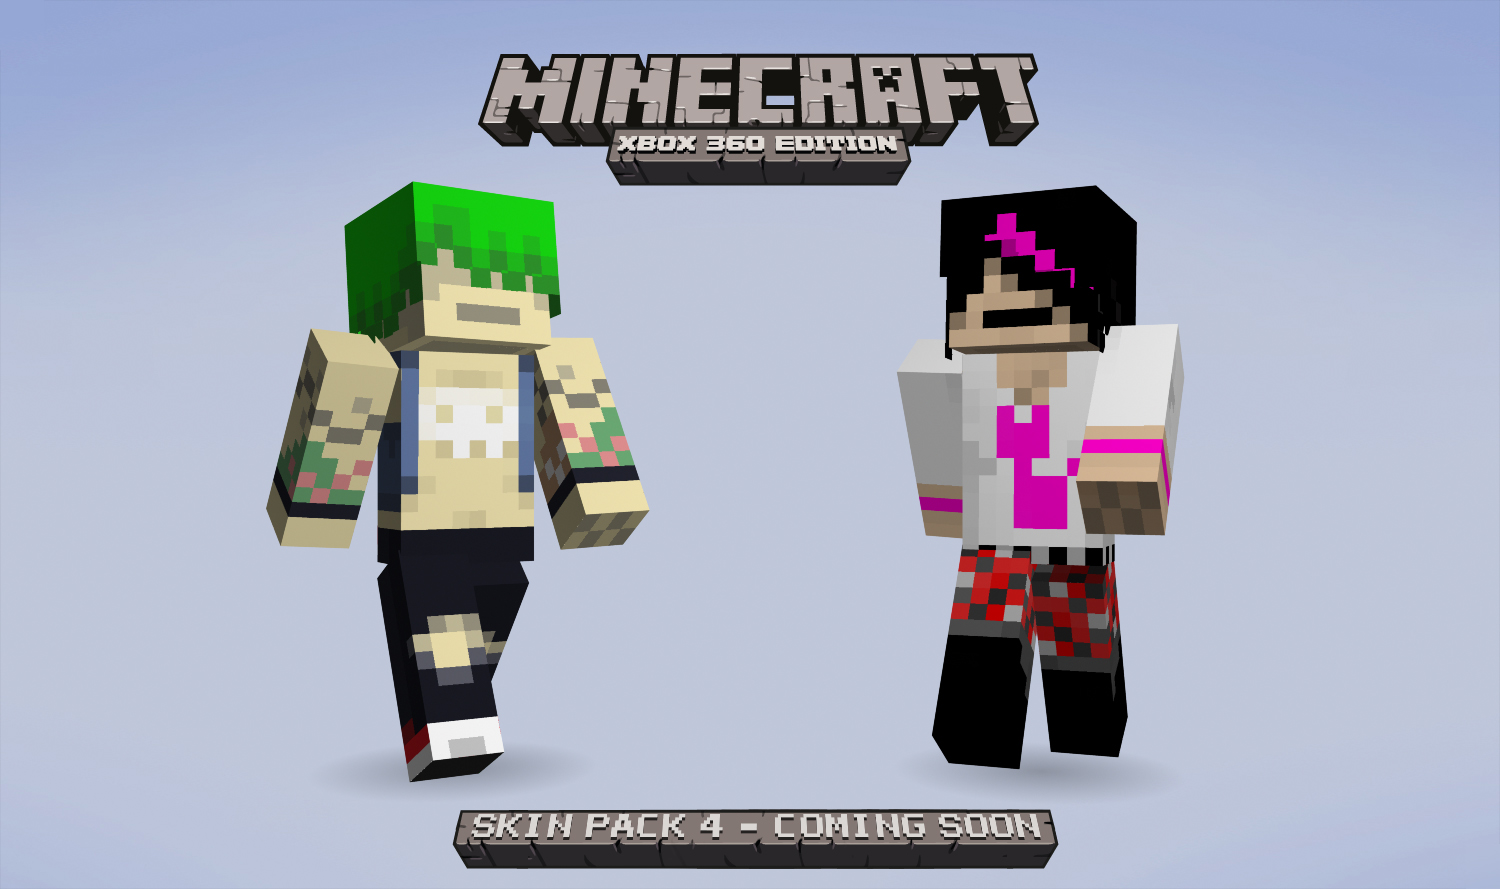 Yet More Minecraft Skin Pack 4